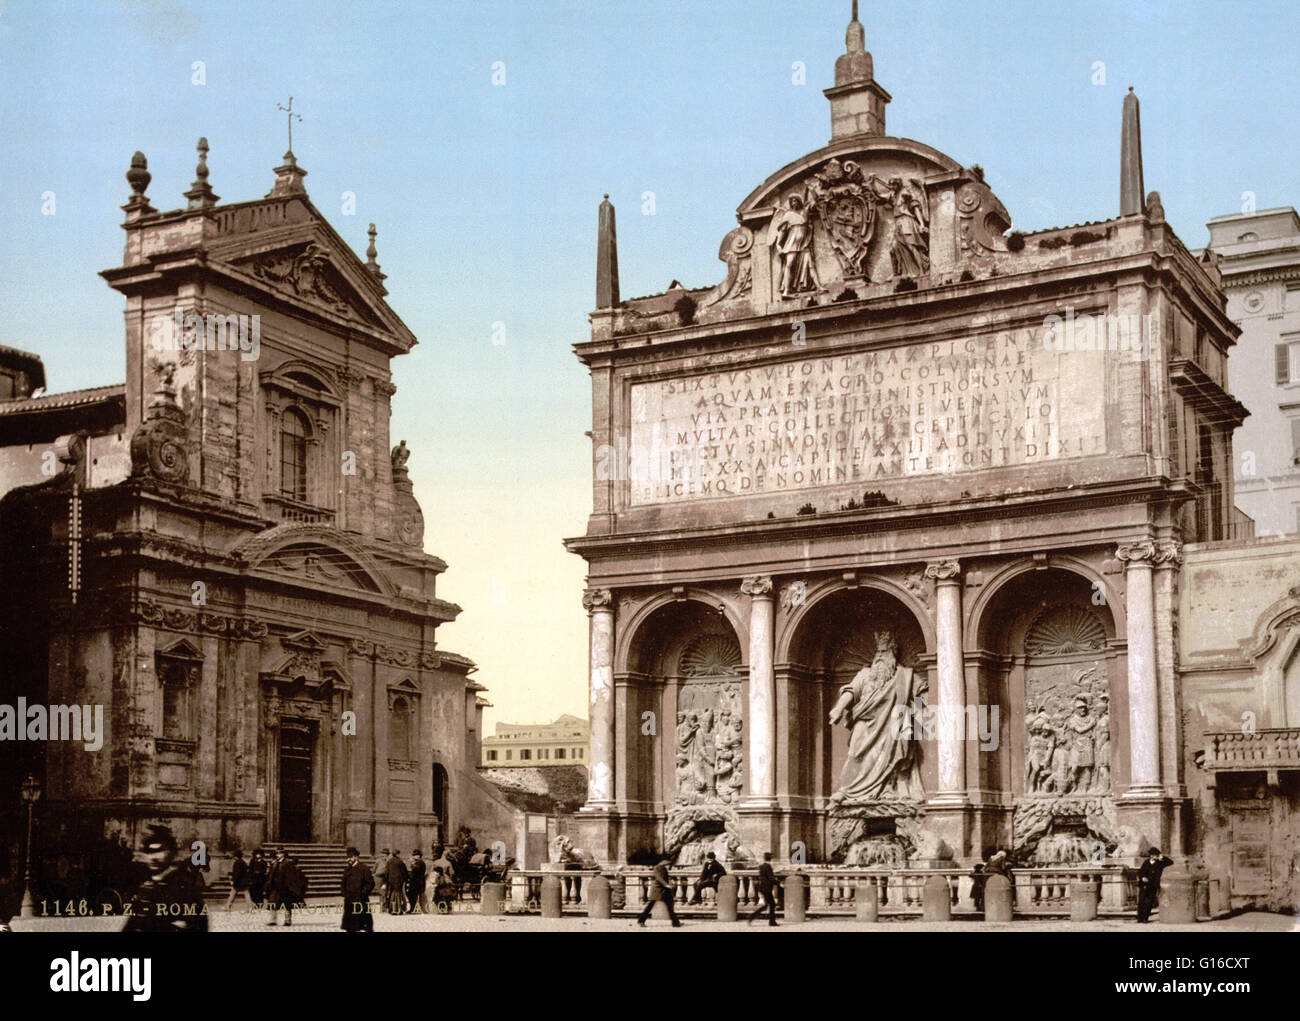 The Fontana dell'Acqua Felice, also called the Fountain of Moses, is a monumental fountain located in the Quirinale - Stock Image